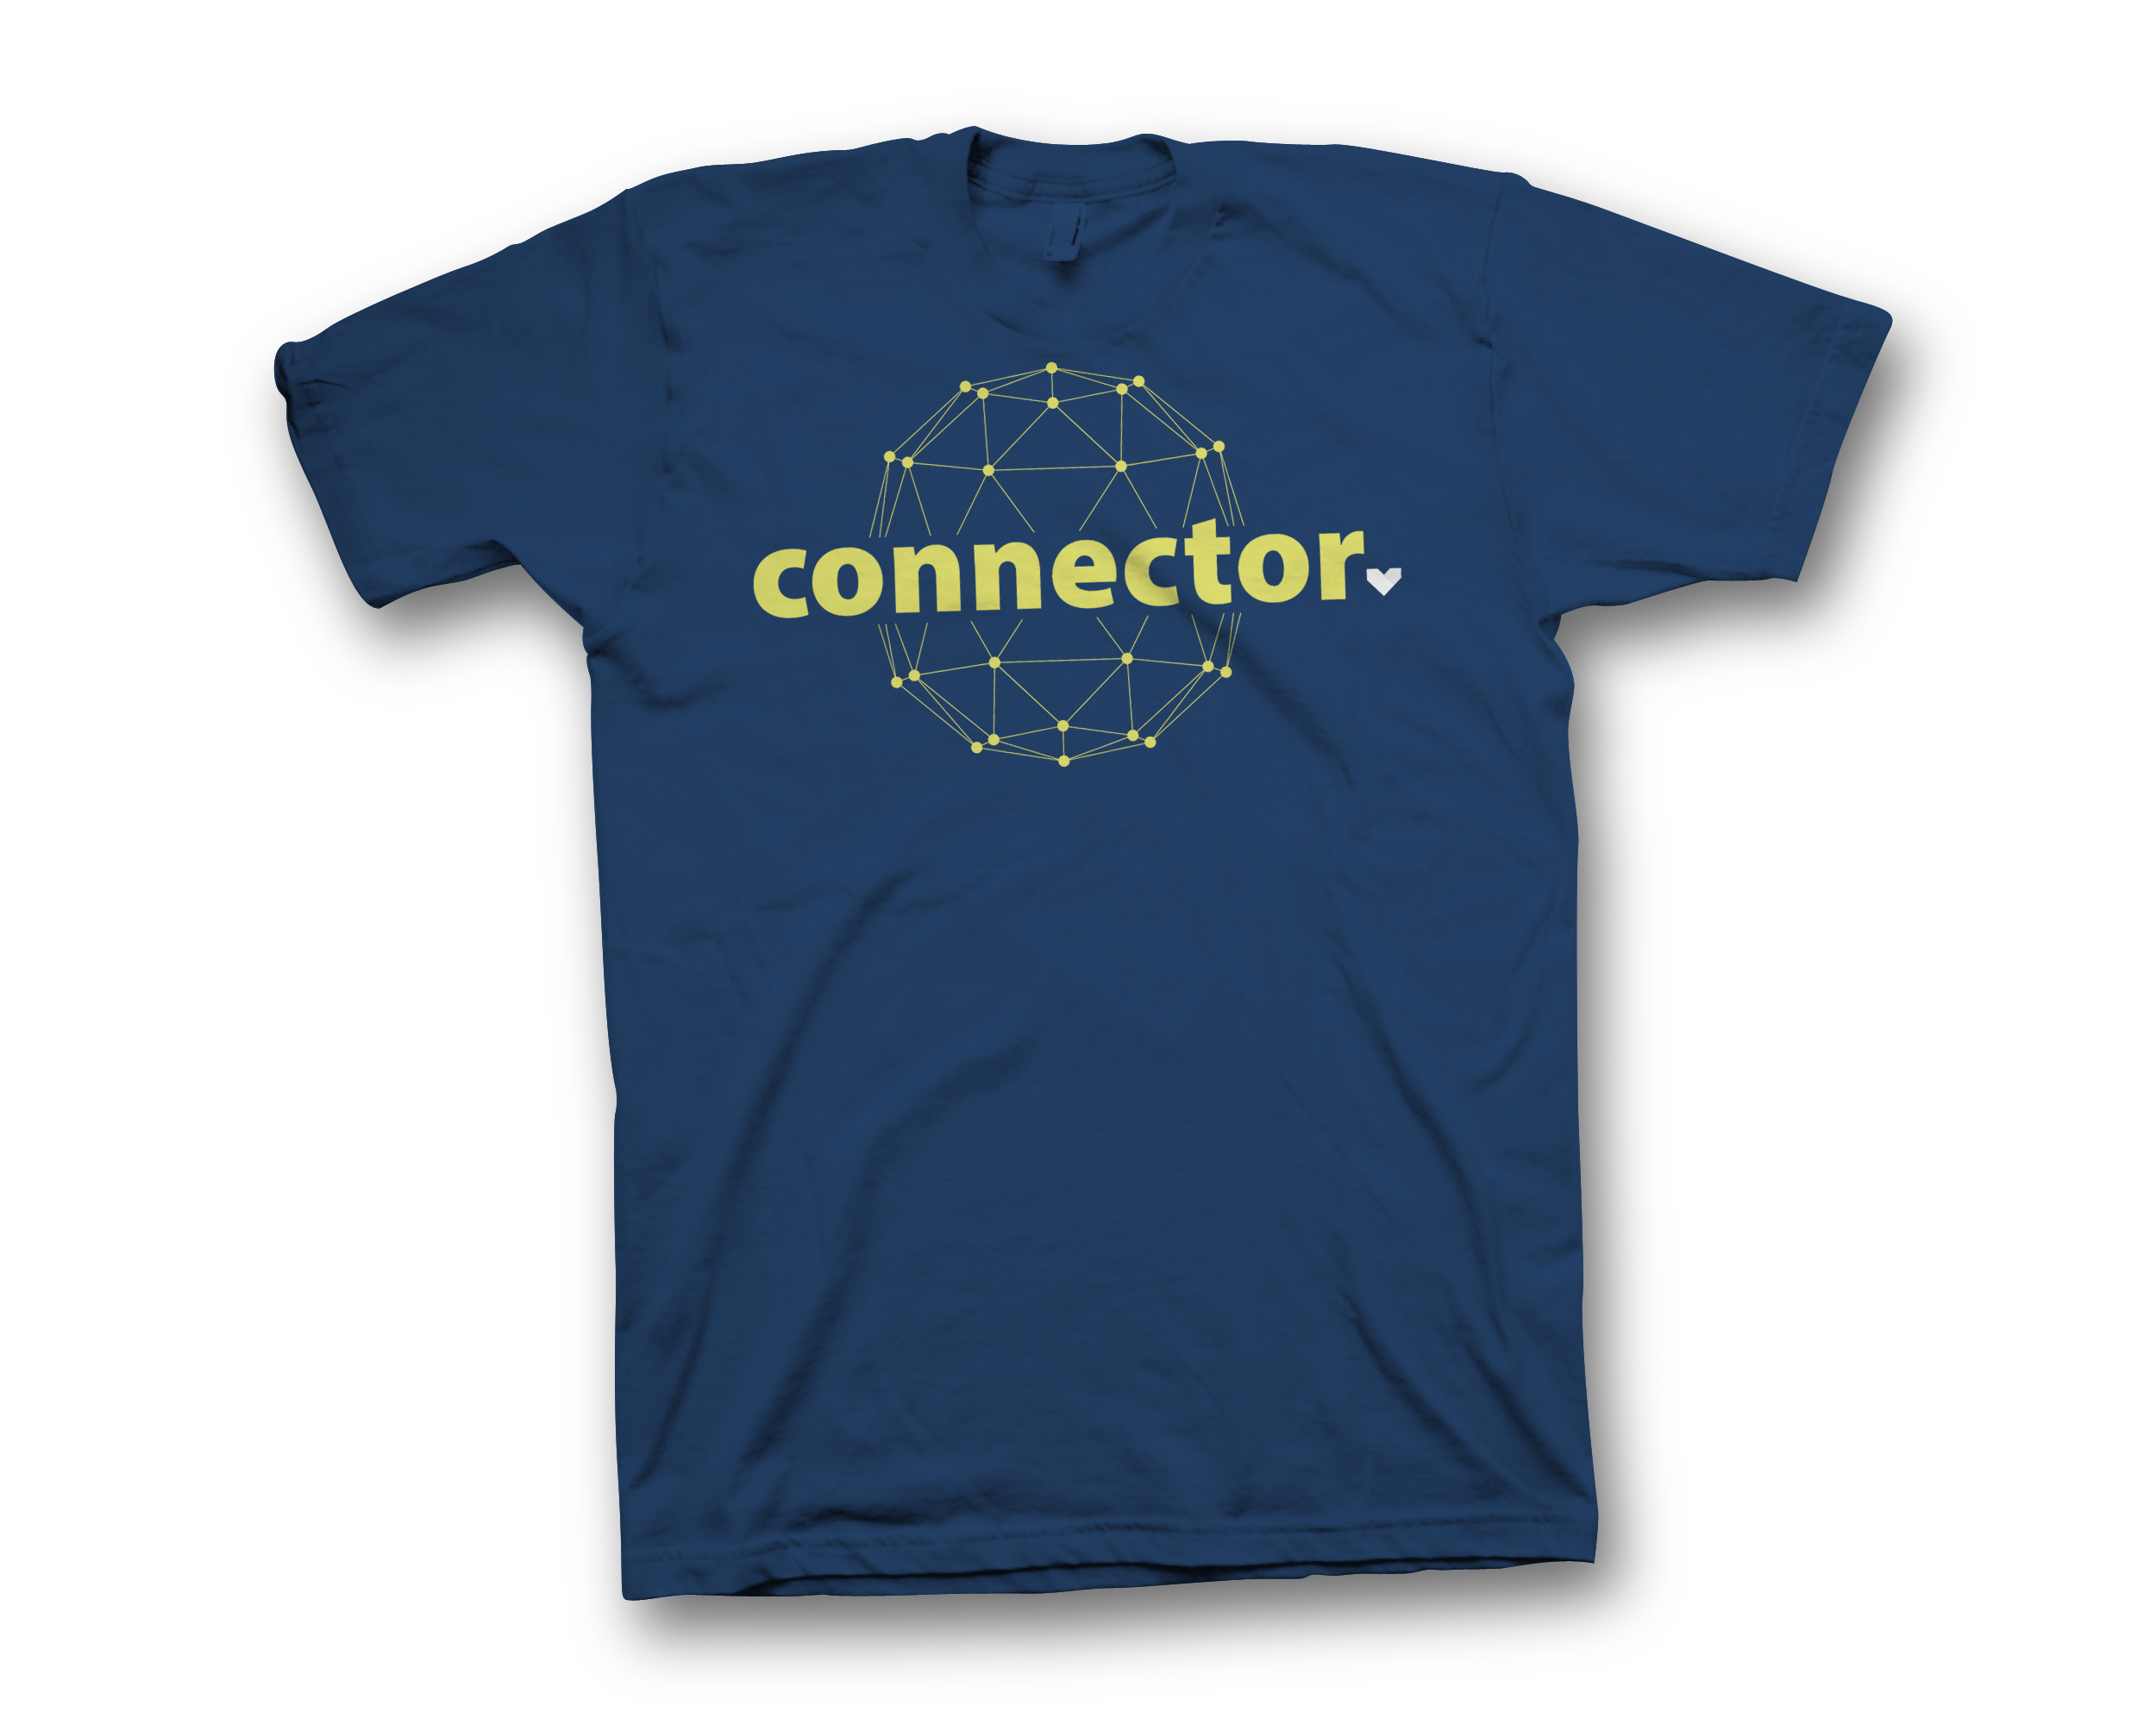 Connector Shirts